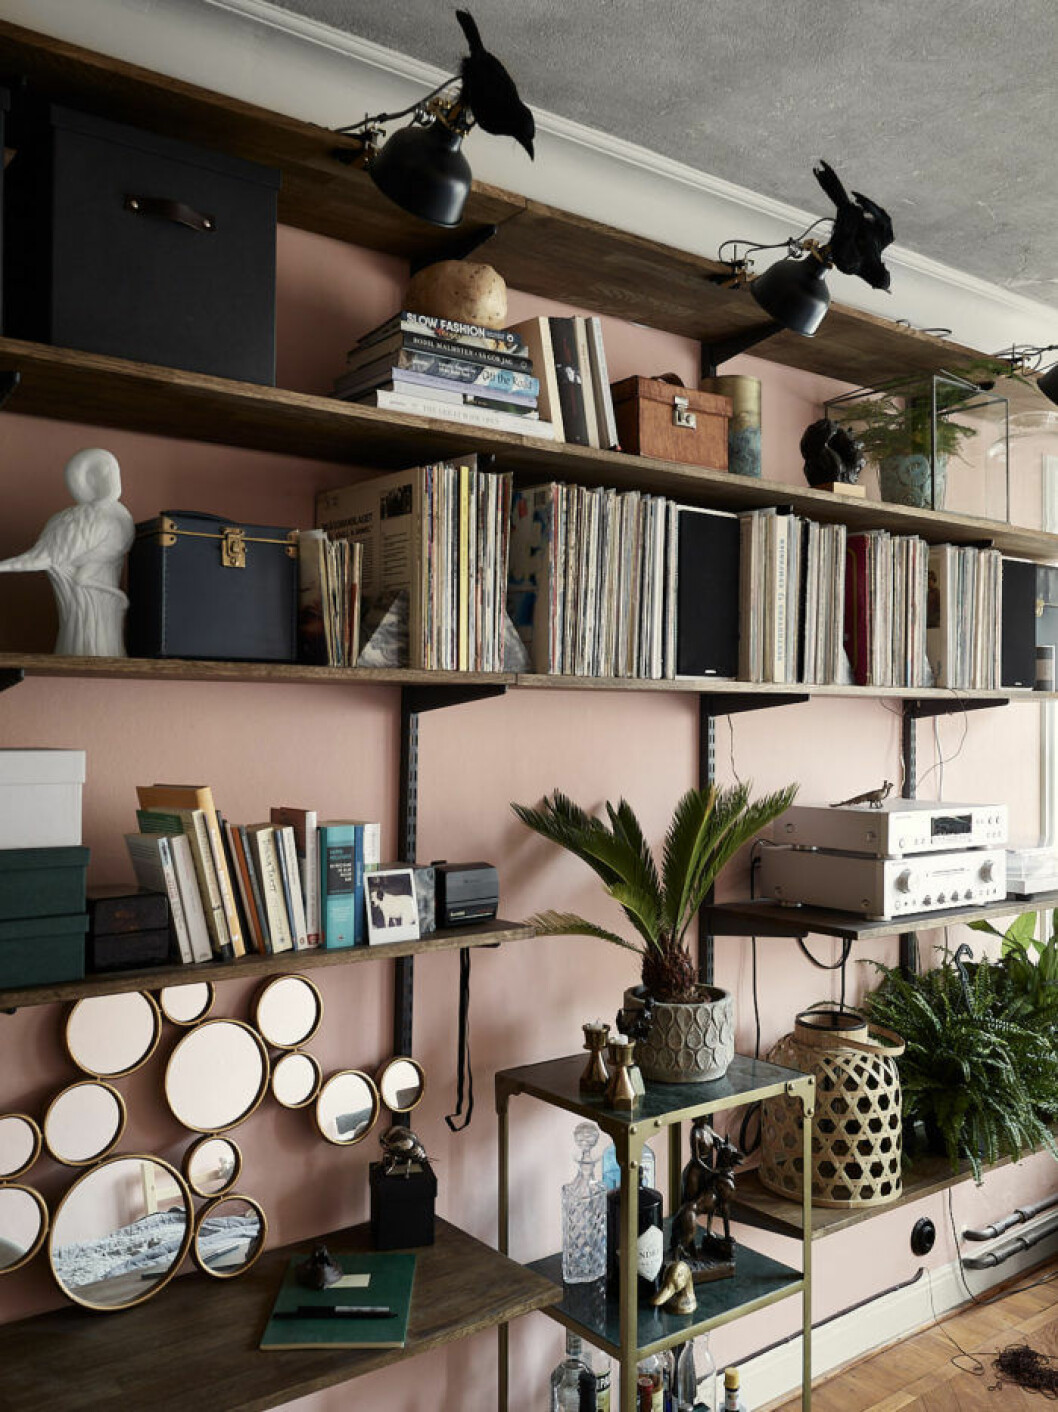 Pink painted walls and decoration. Scandinavian interior ideas and inspiration.